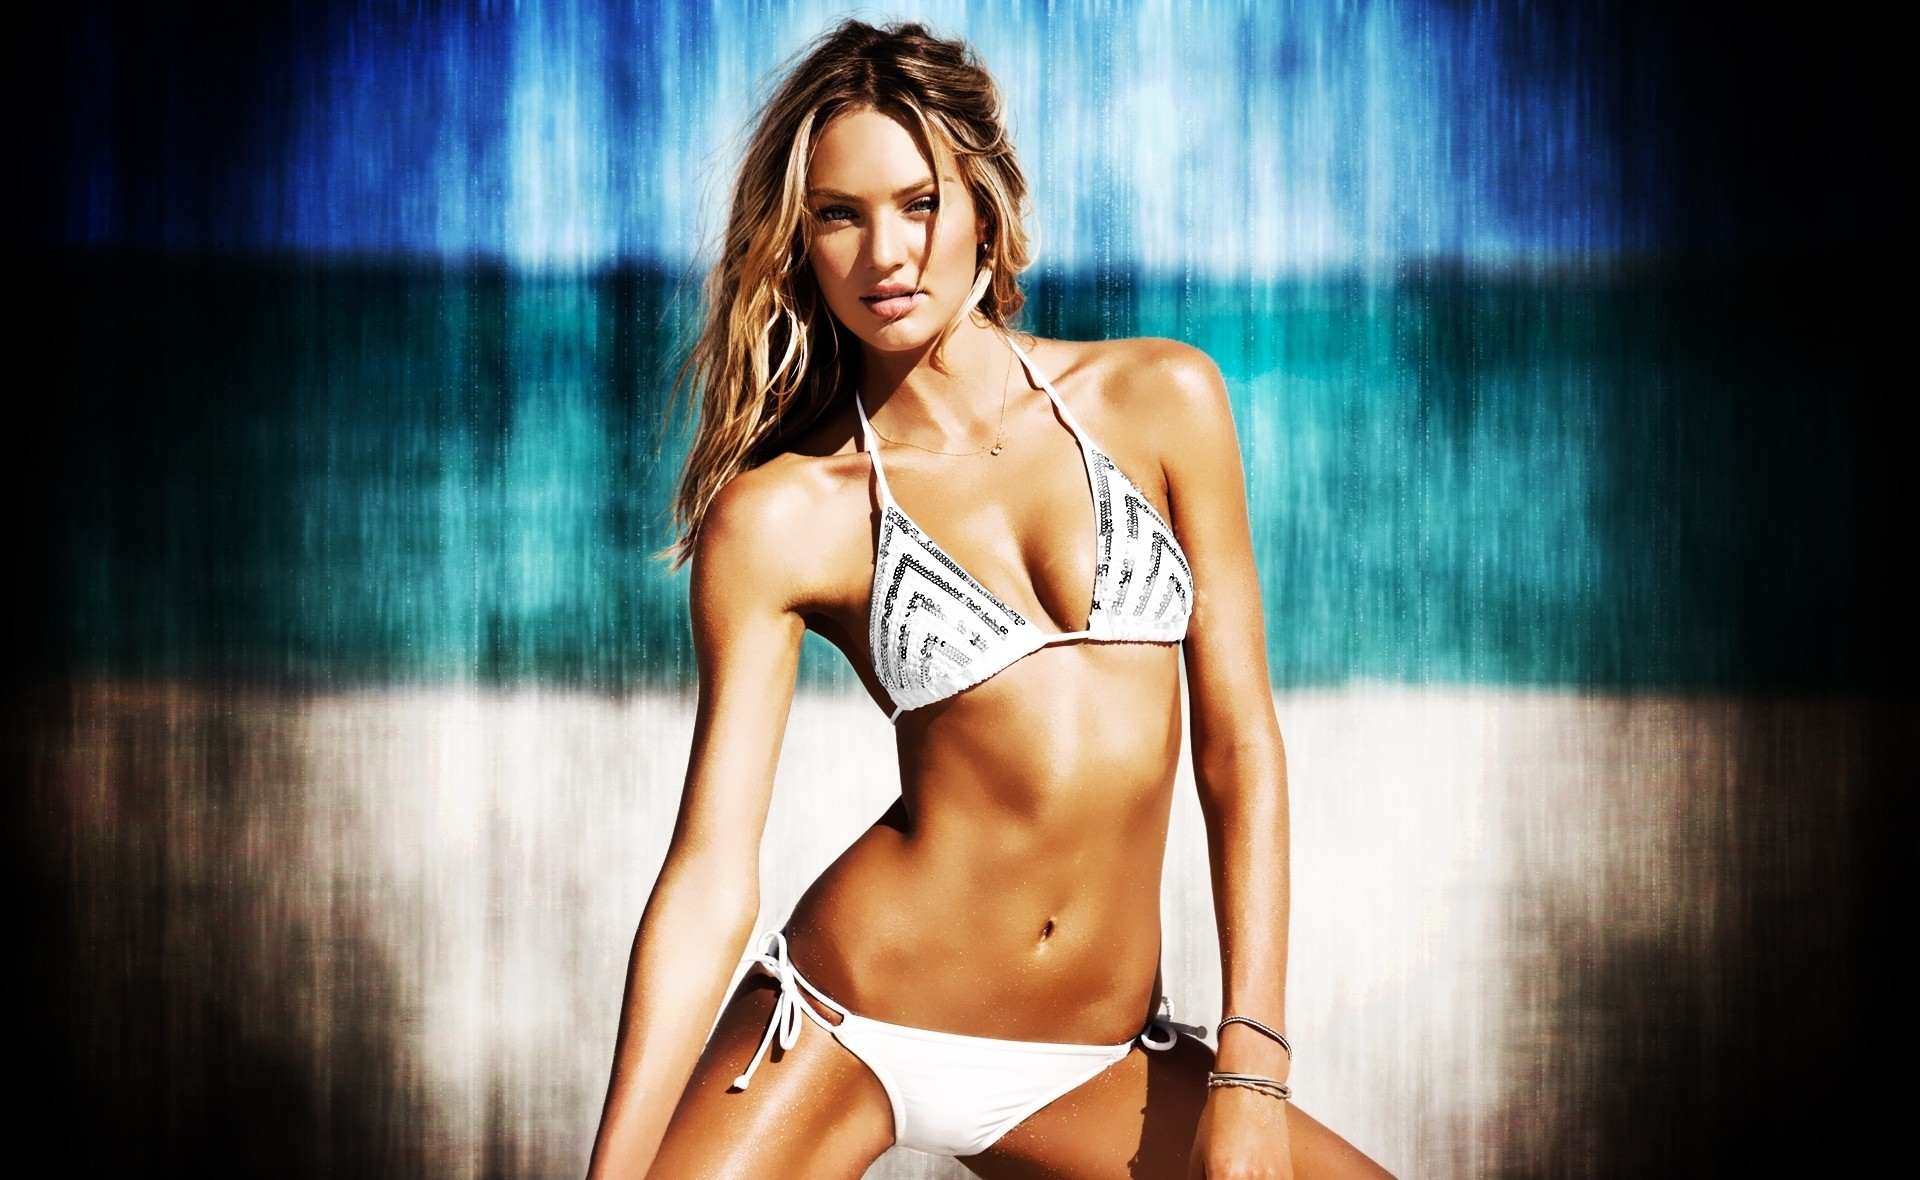 blondes woman bikini candice HD Wallpaper